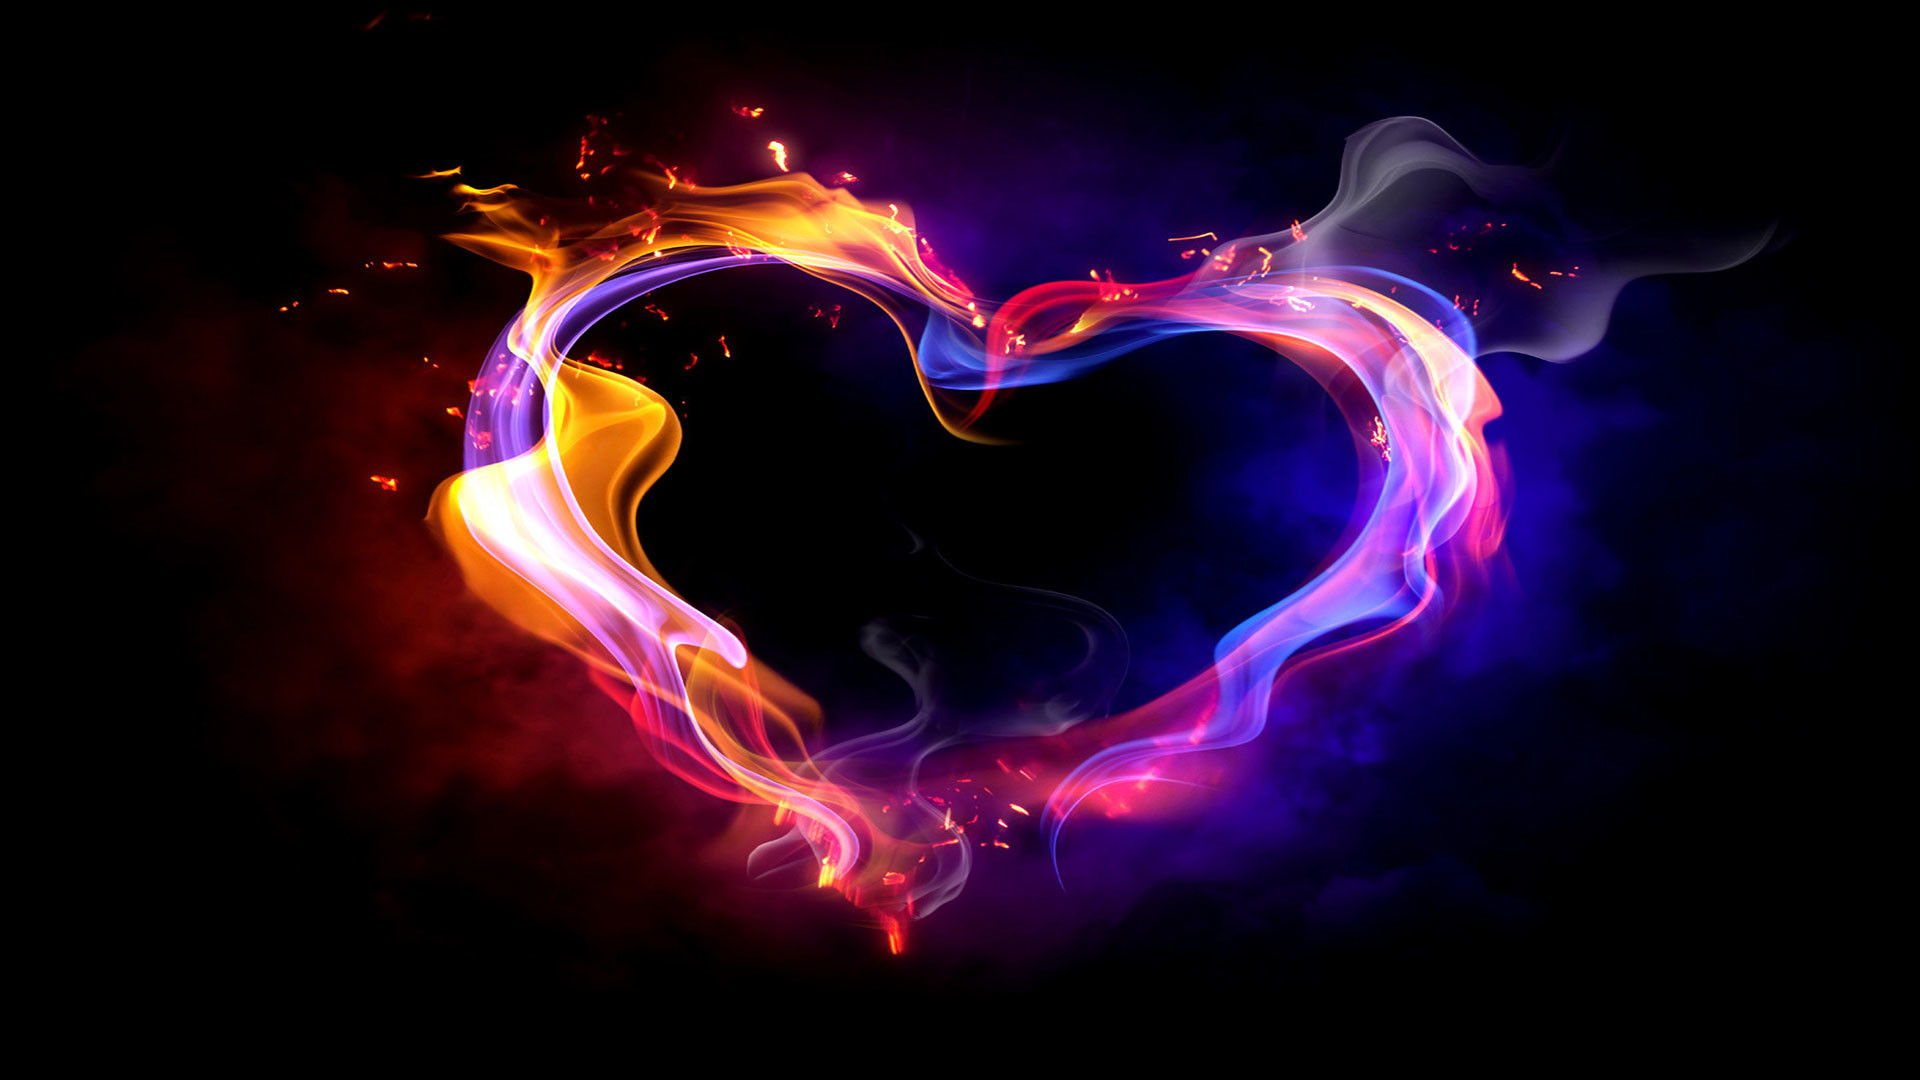 1920x1080 colorful-smoke-heart-20818-hd-widescreen-wallpapers Download Colorful .